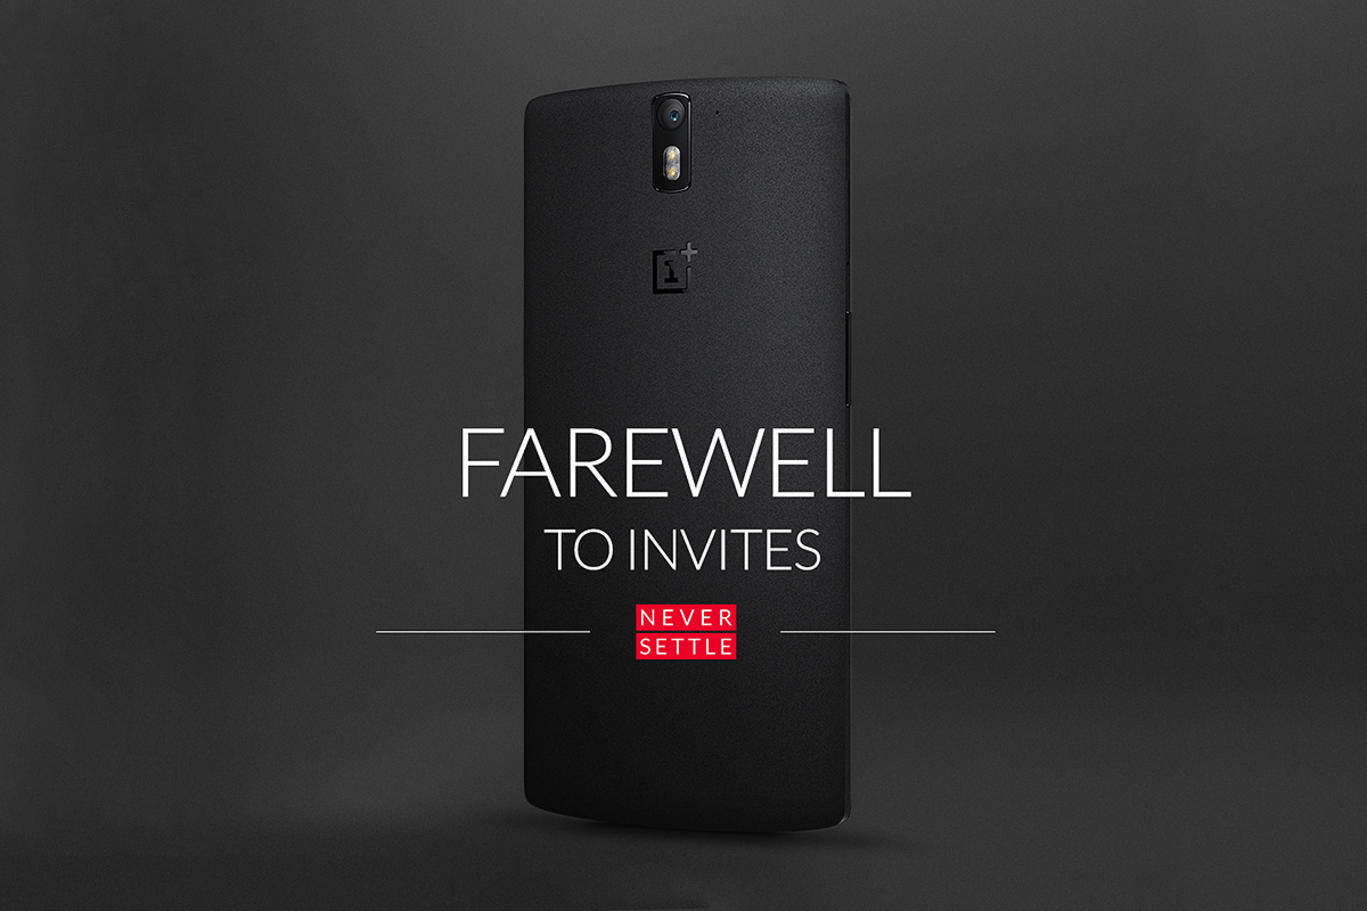 oneplus one farewell to invites